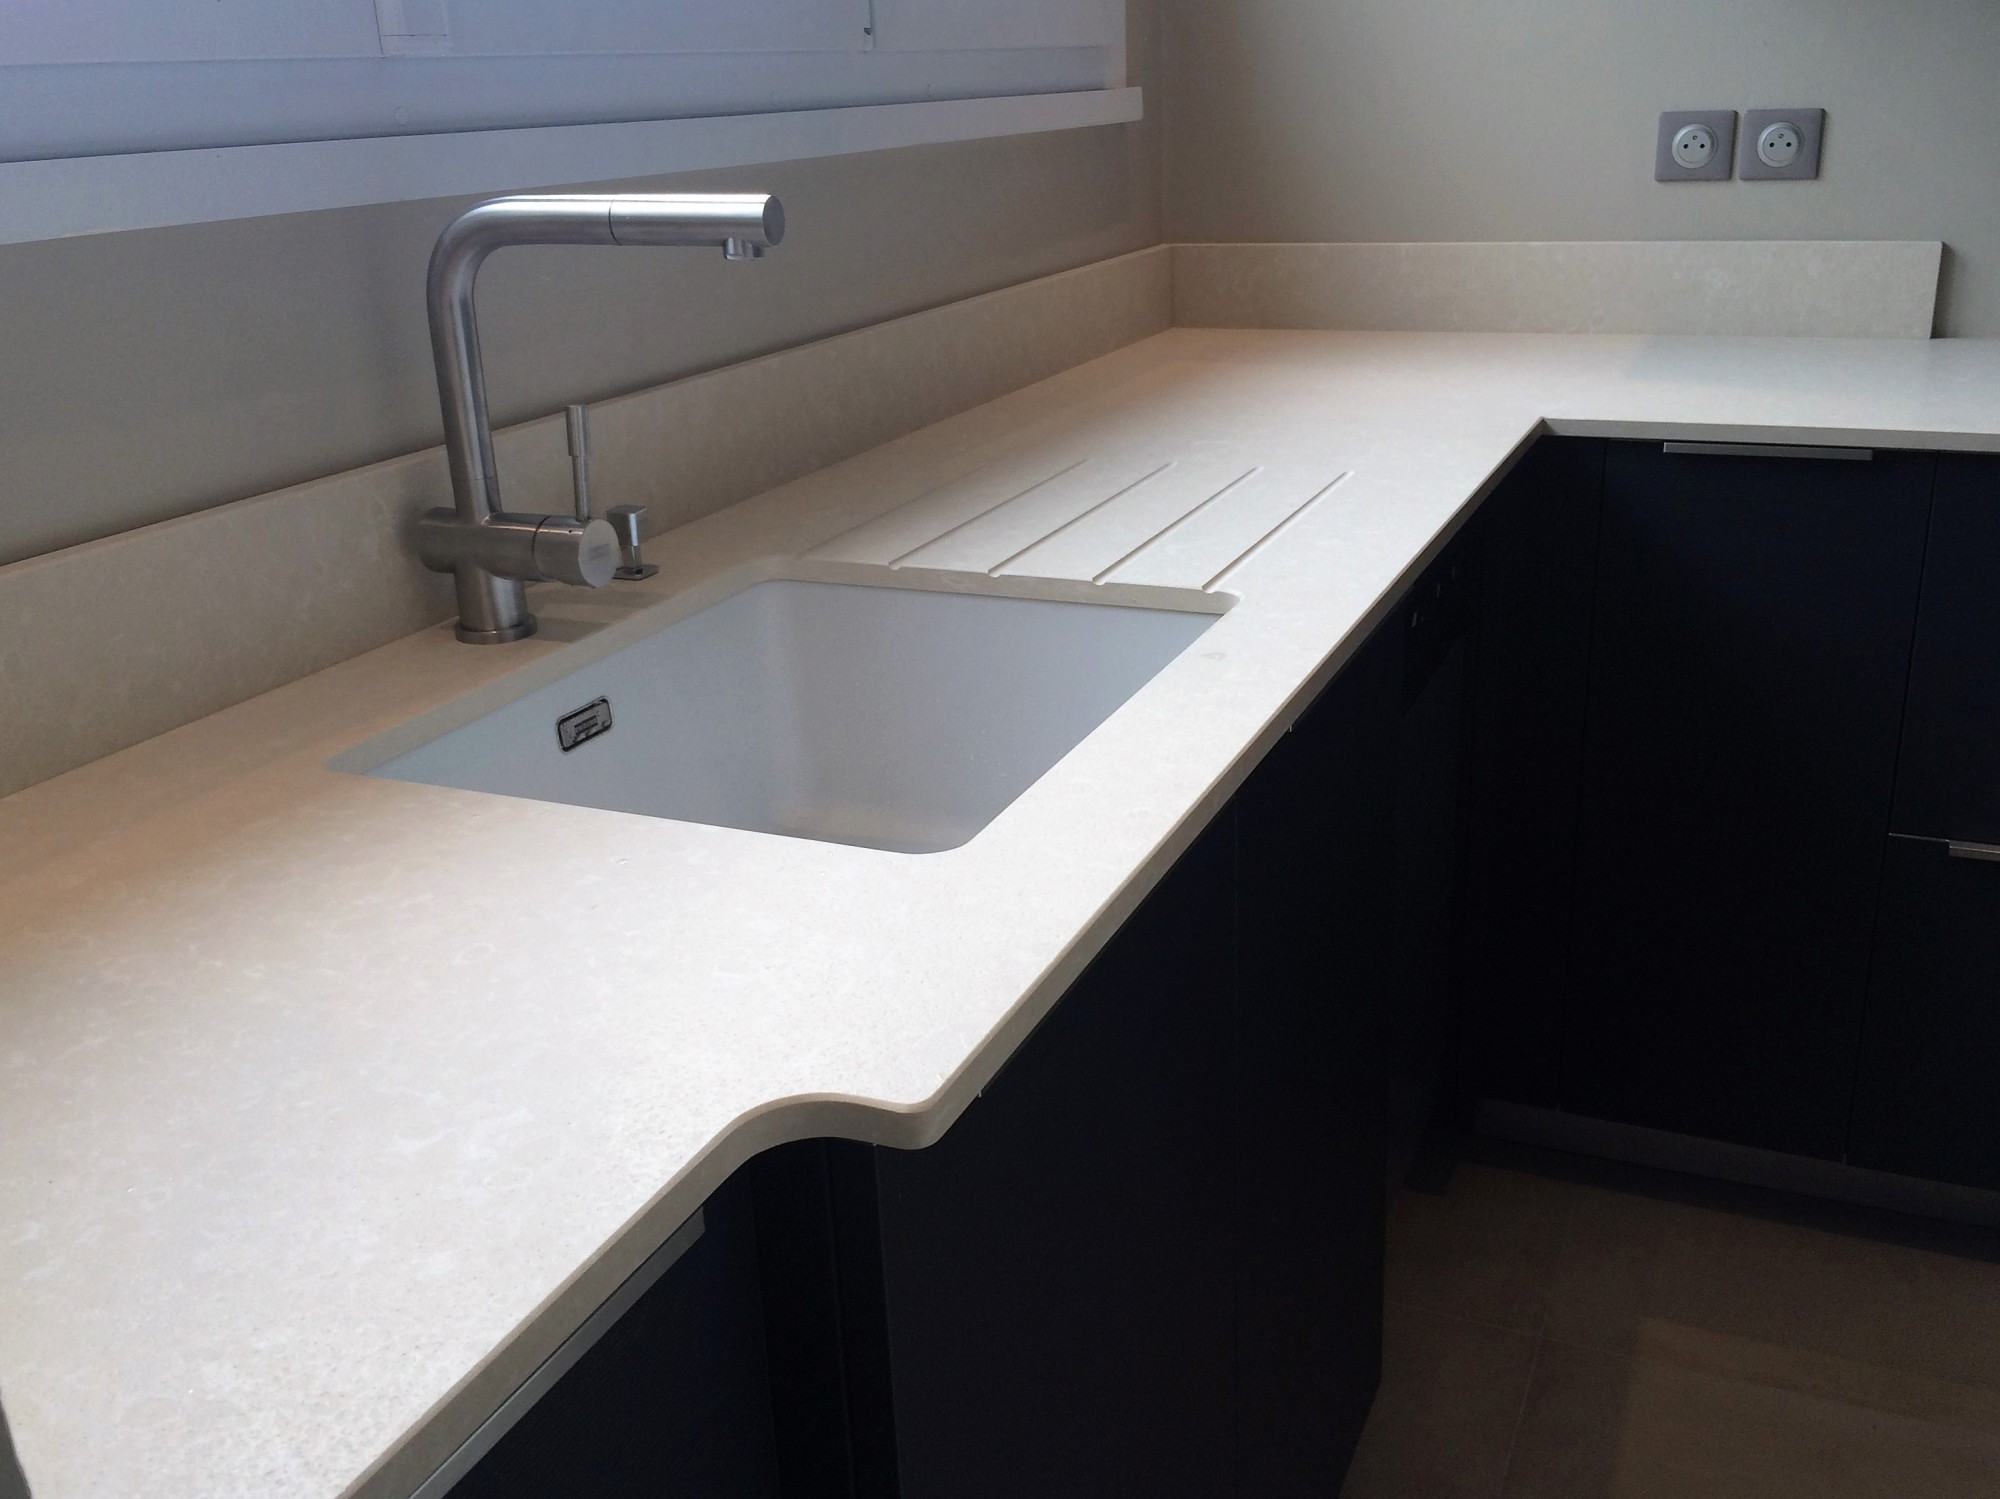 Rainurage d 39 evier de cuisine en granit quartz dekton en for Decoupe de plan de travail